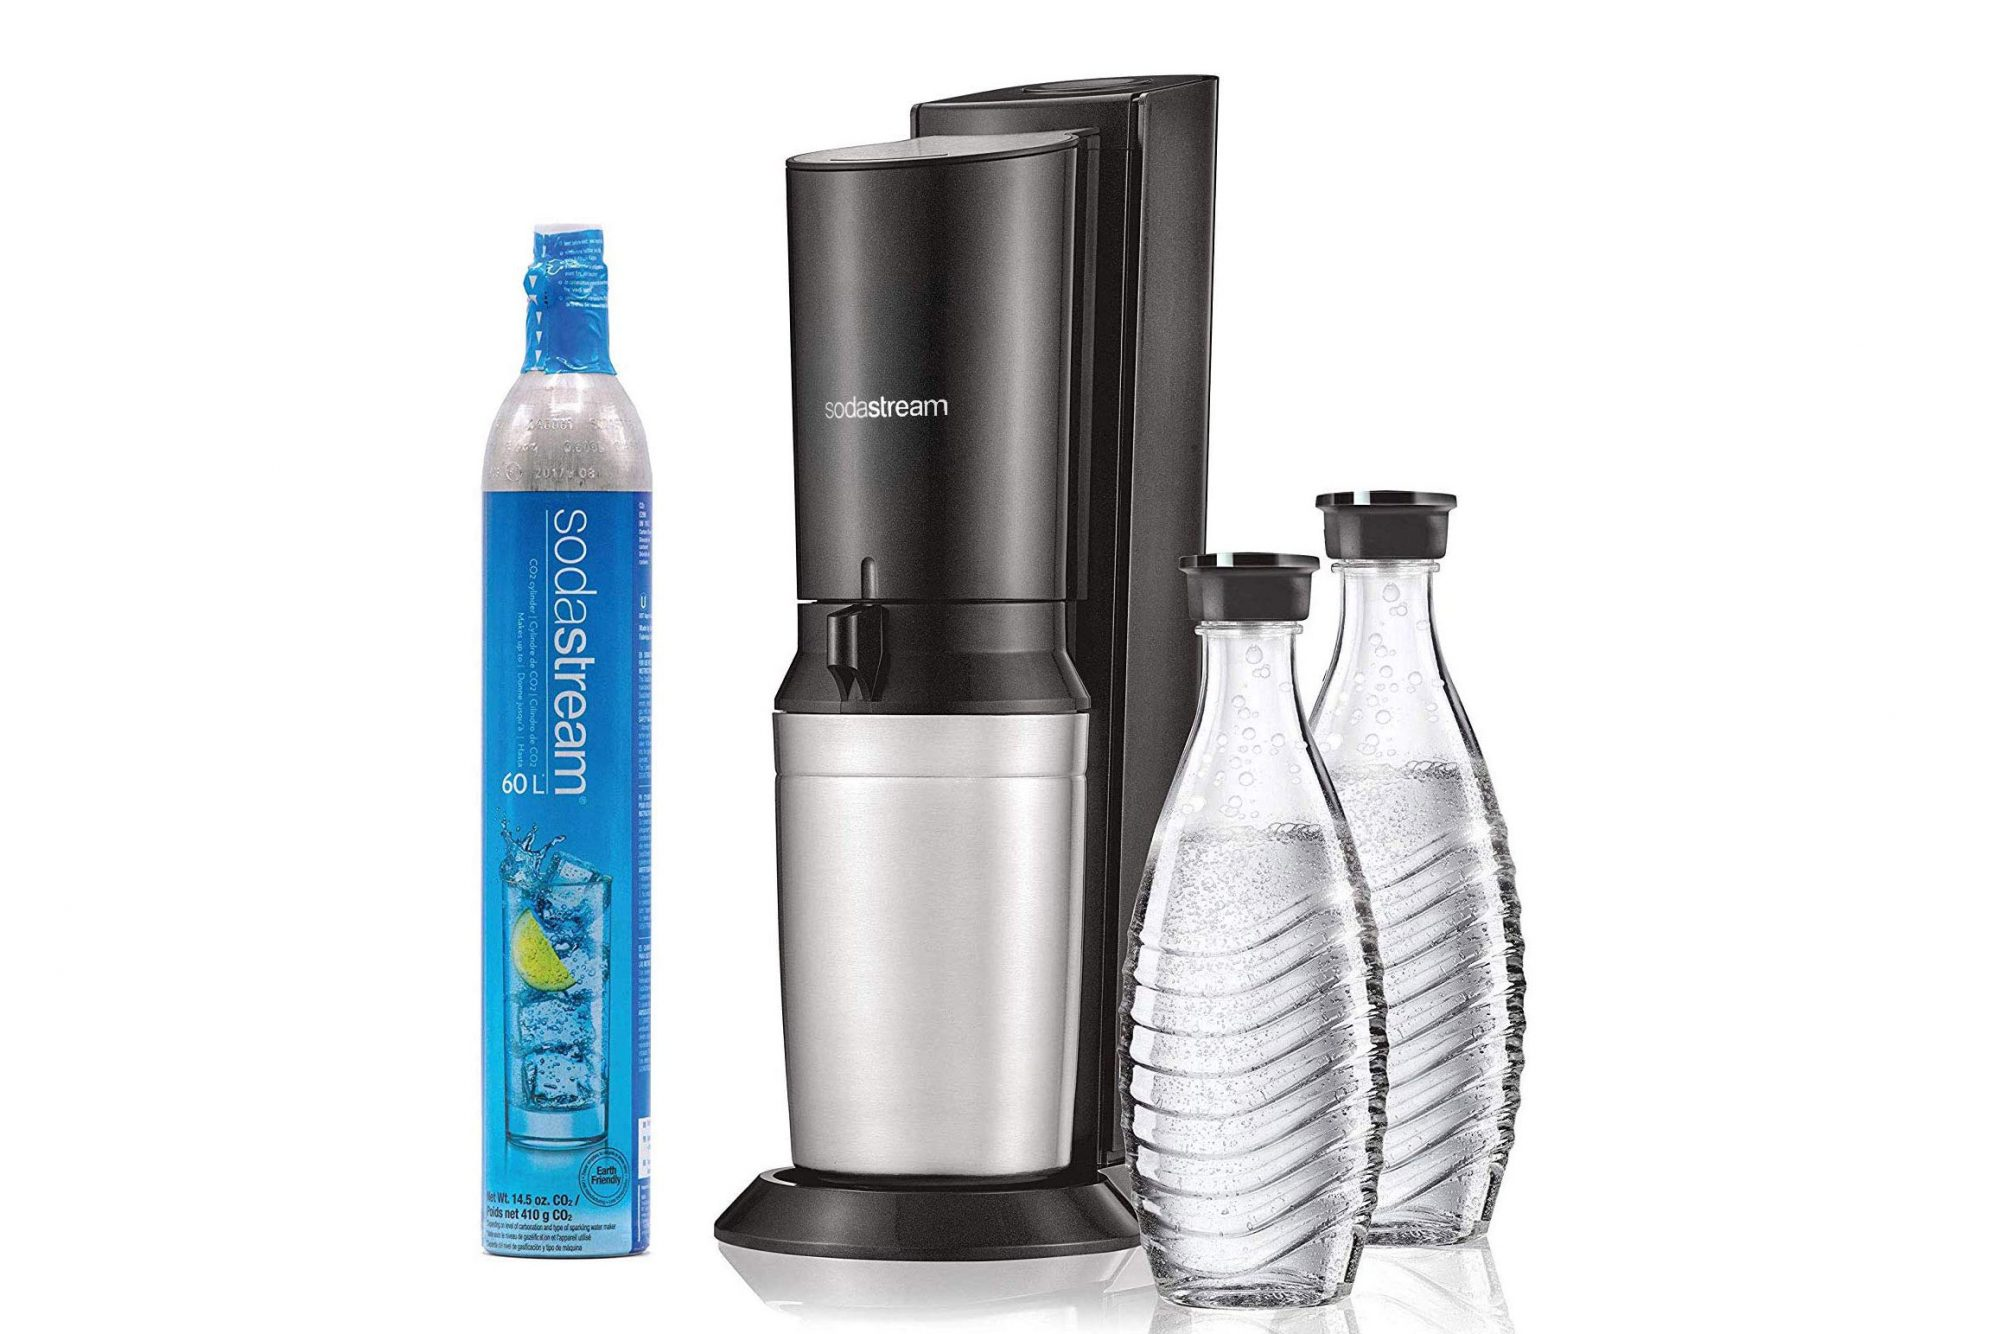 SodaStream Aqua Fizz Premium soda maker with two soda bottles and one CO2 canister refill